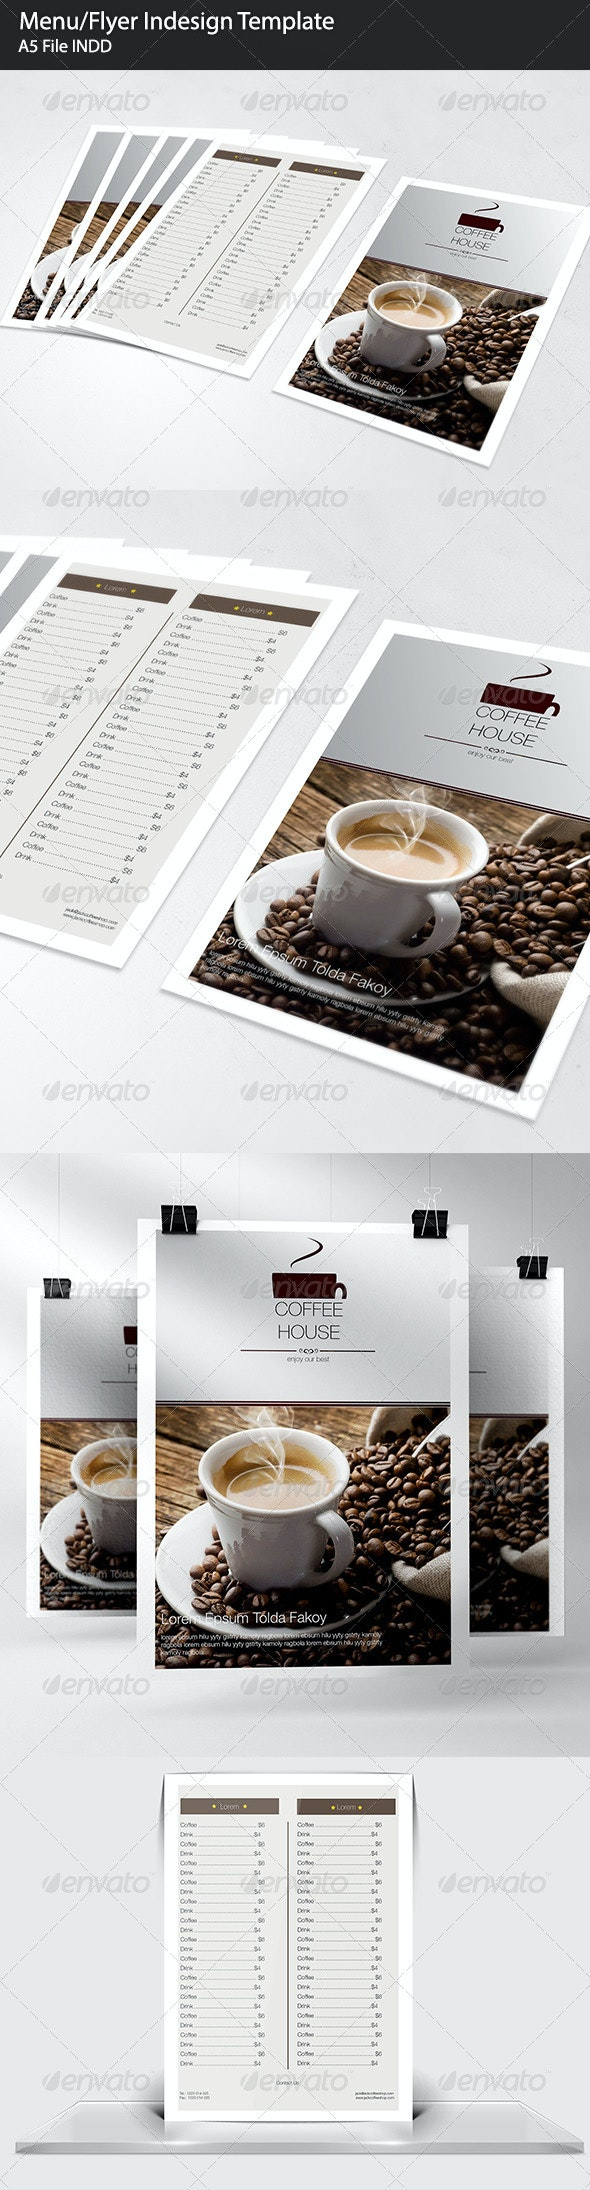 Menu/Flyer Indesign Template  - Food Menus Print Templates